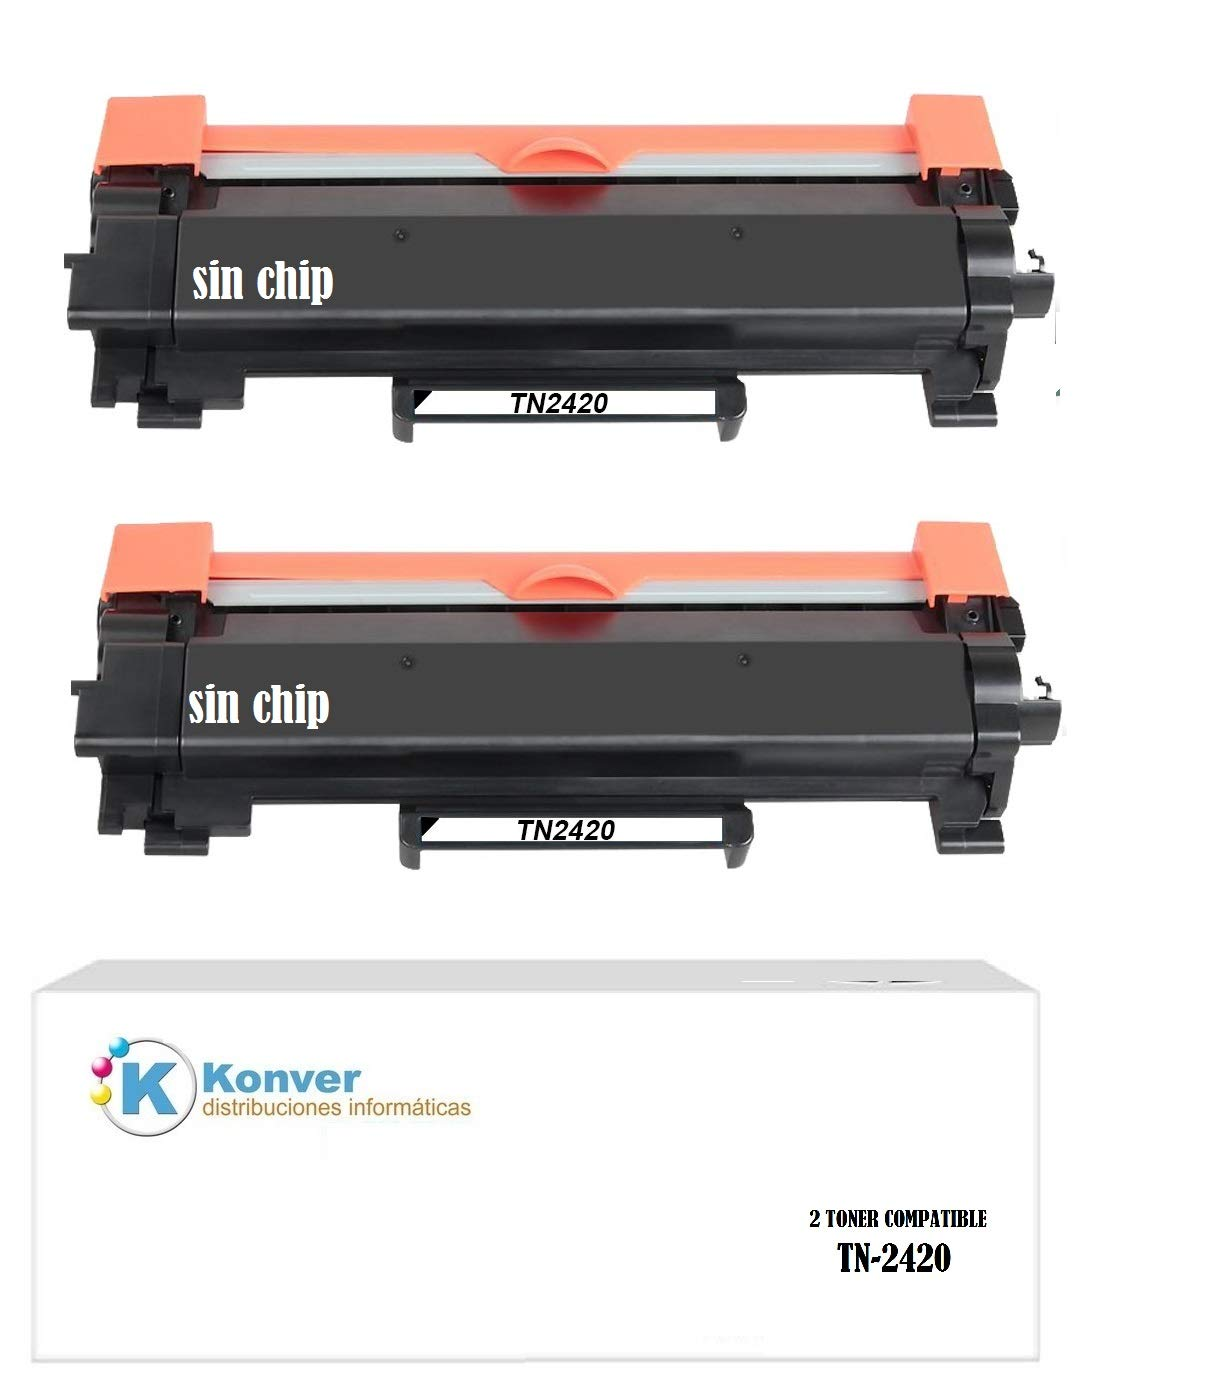 2 Toner Compatible TN-2420, TN2420 para Impresora Brother DCP ...